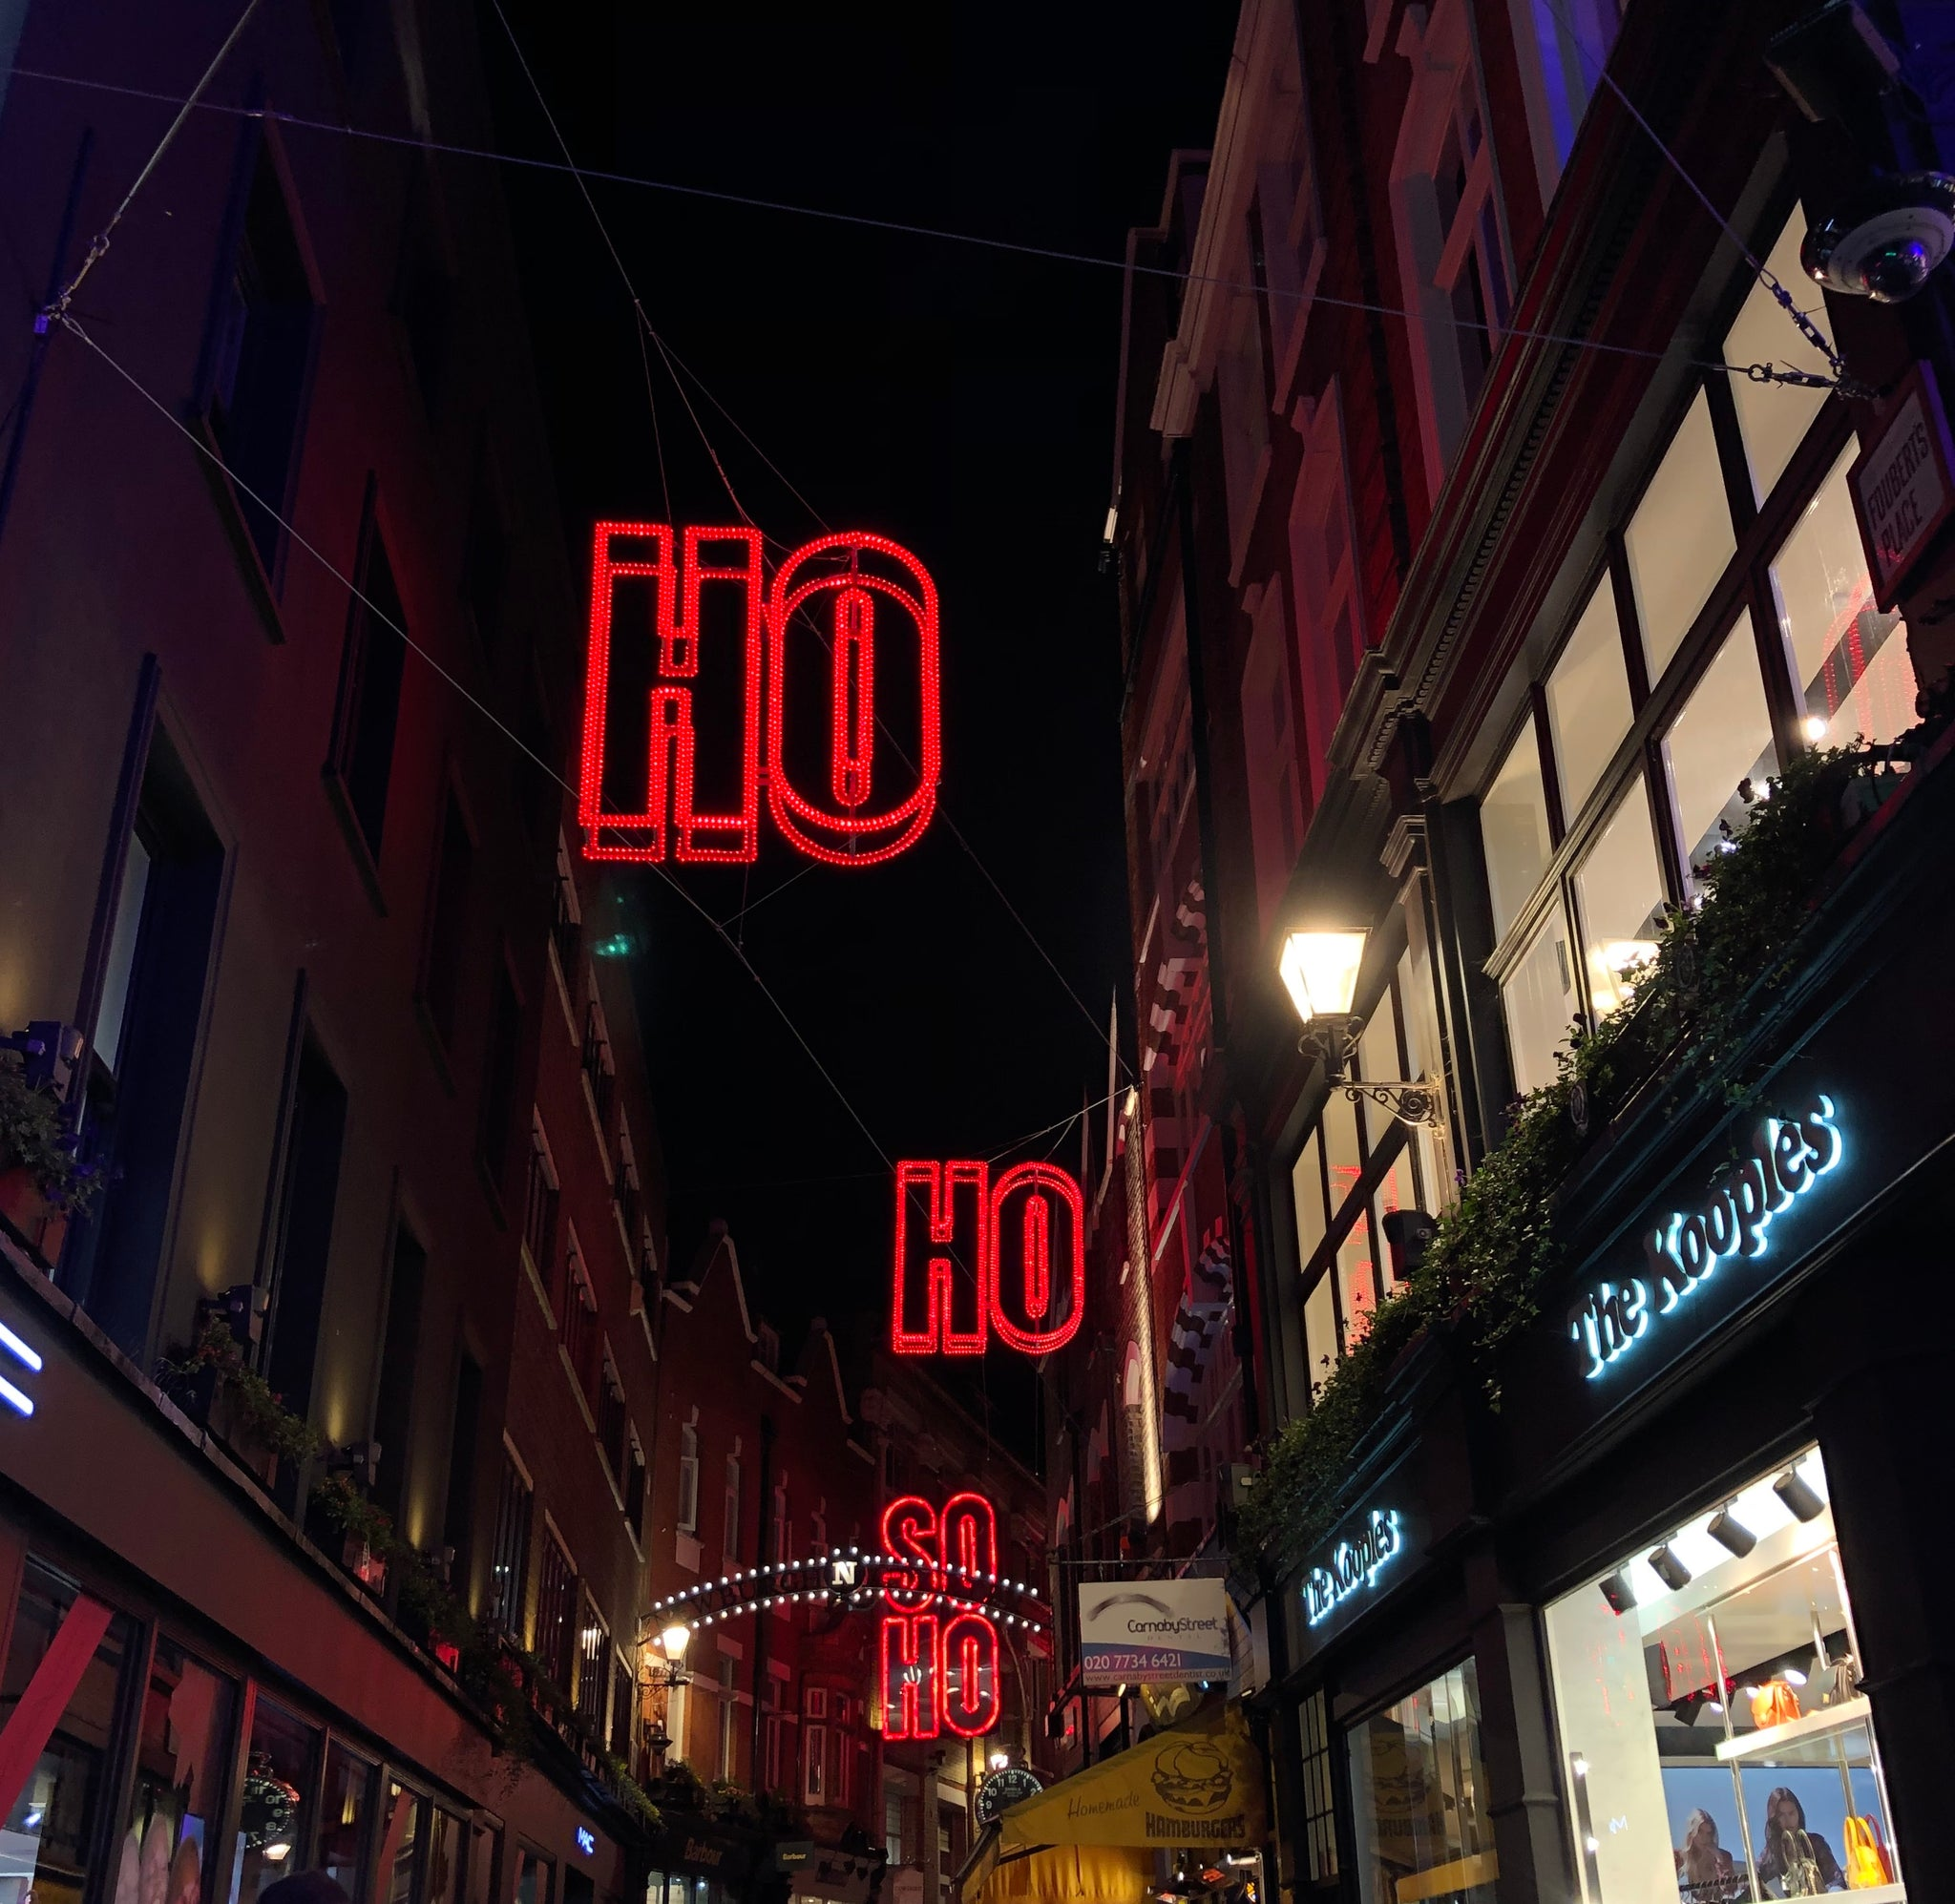 Getting into London's pre-Xmas spirit with Lola Miller